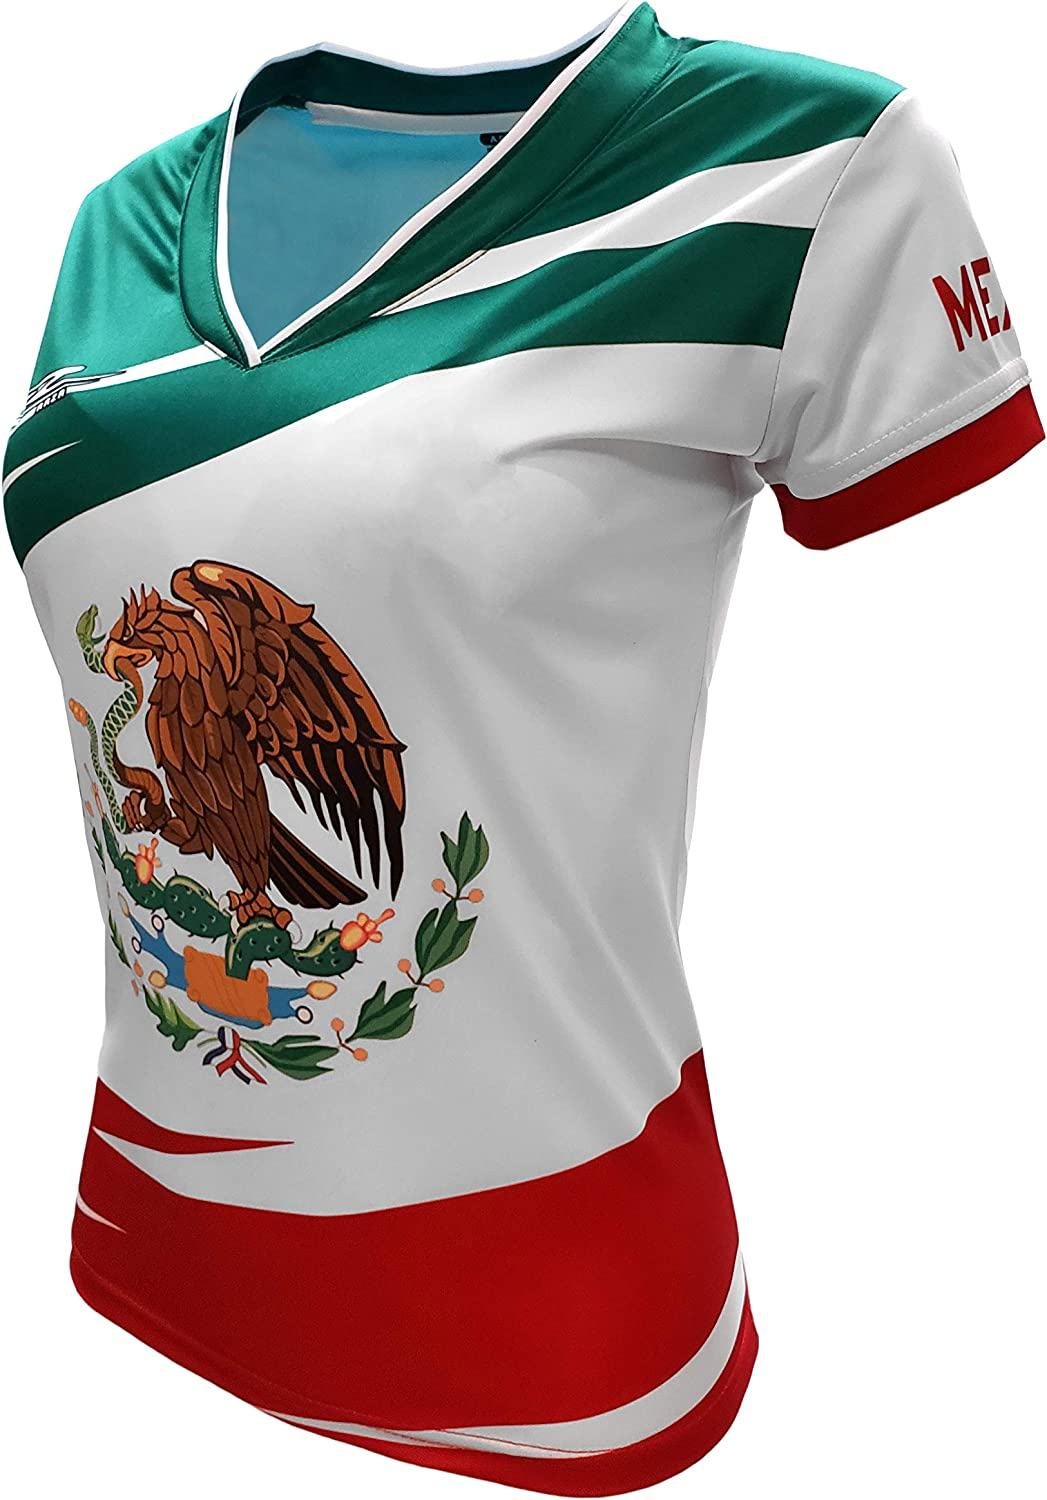 Mexico Jersey Arza Design for Women with V Neck Color Green,White,Red